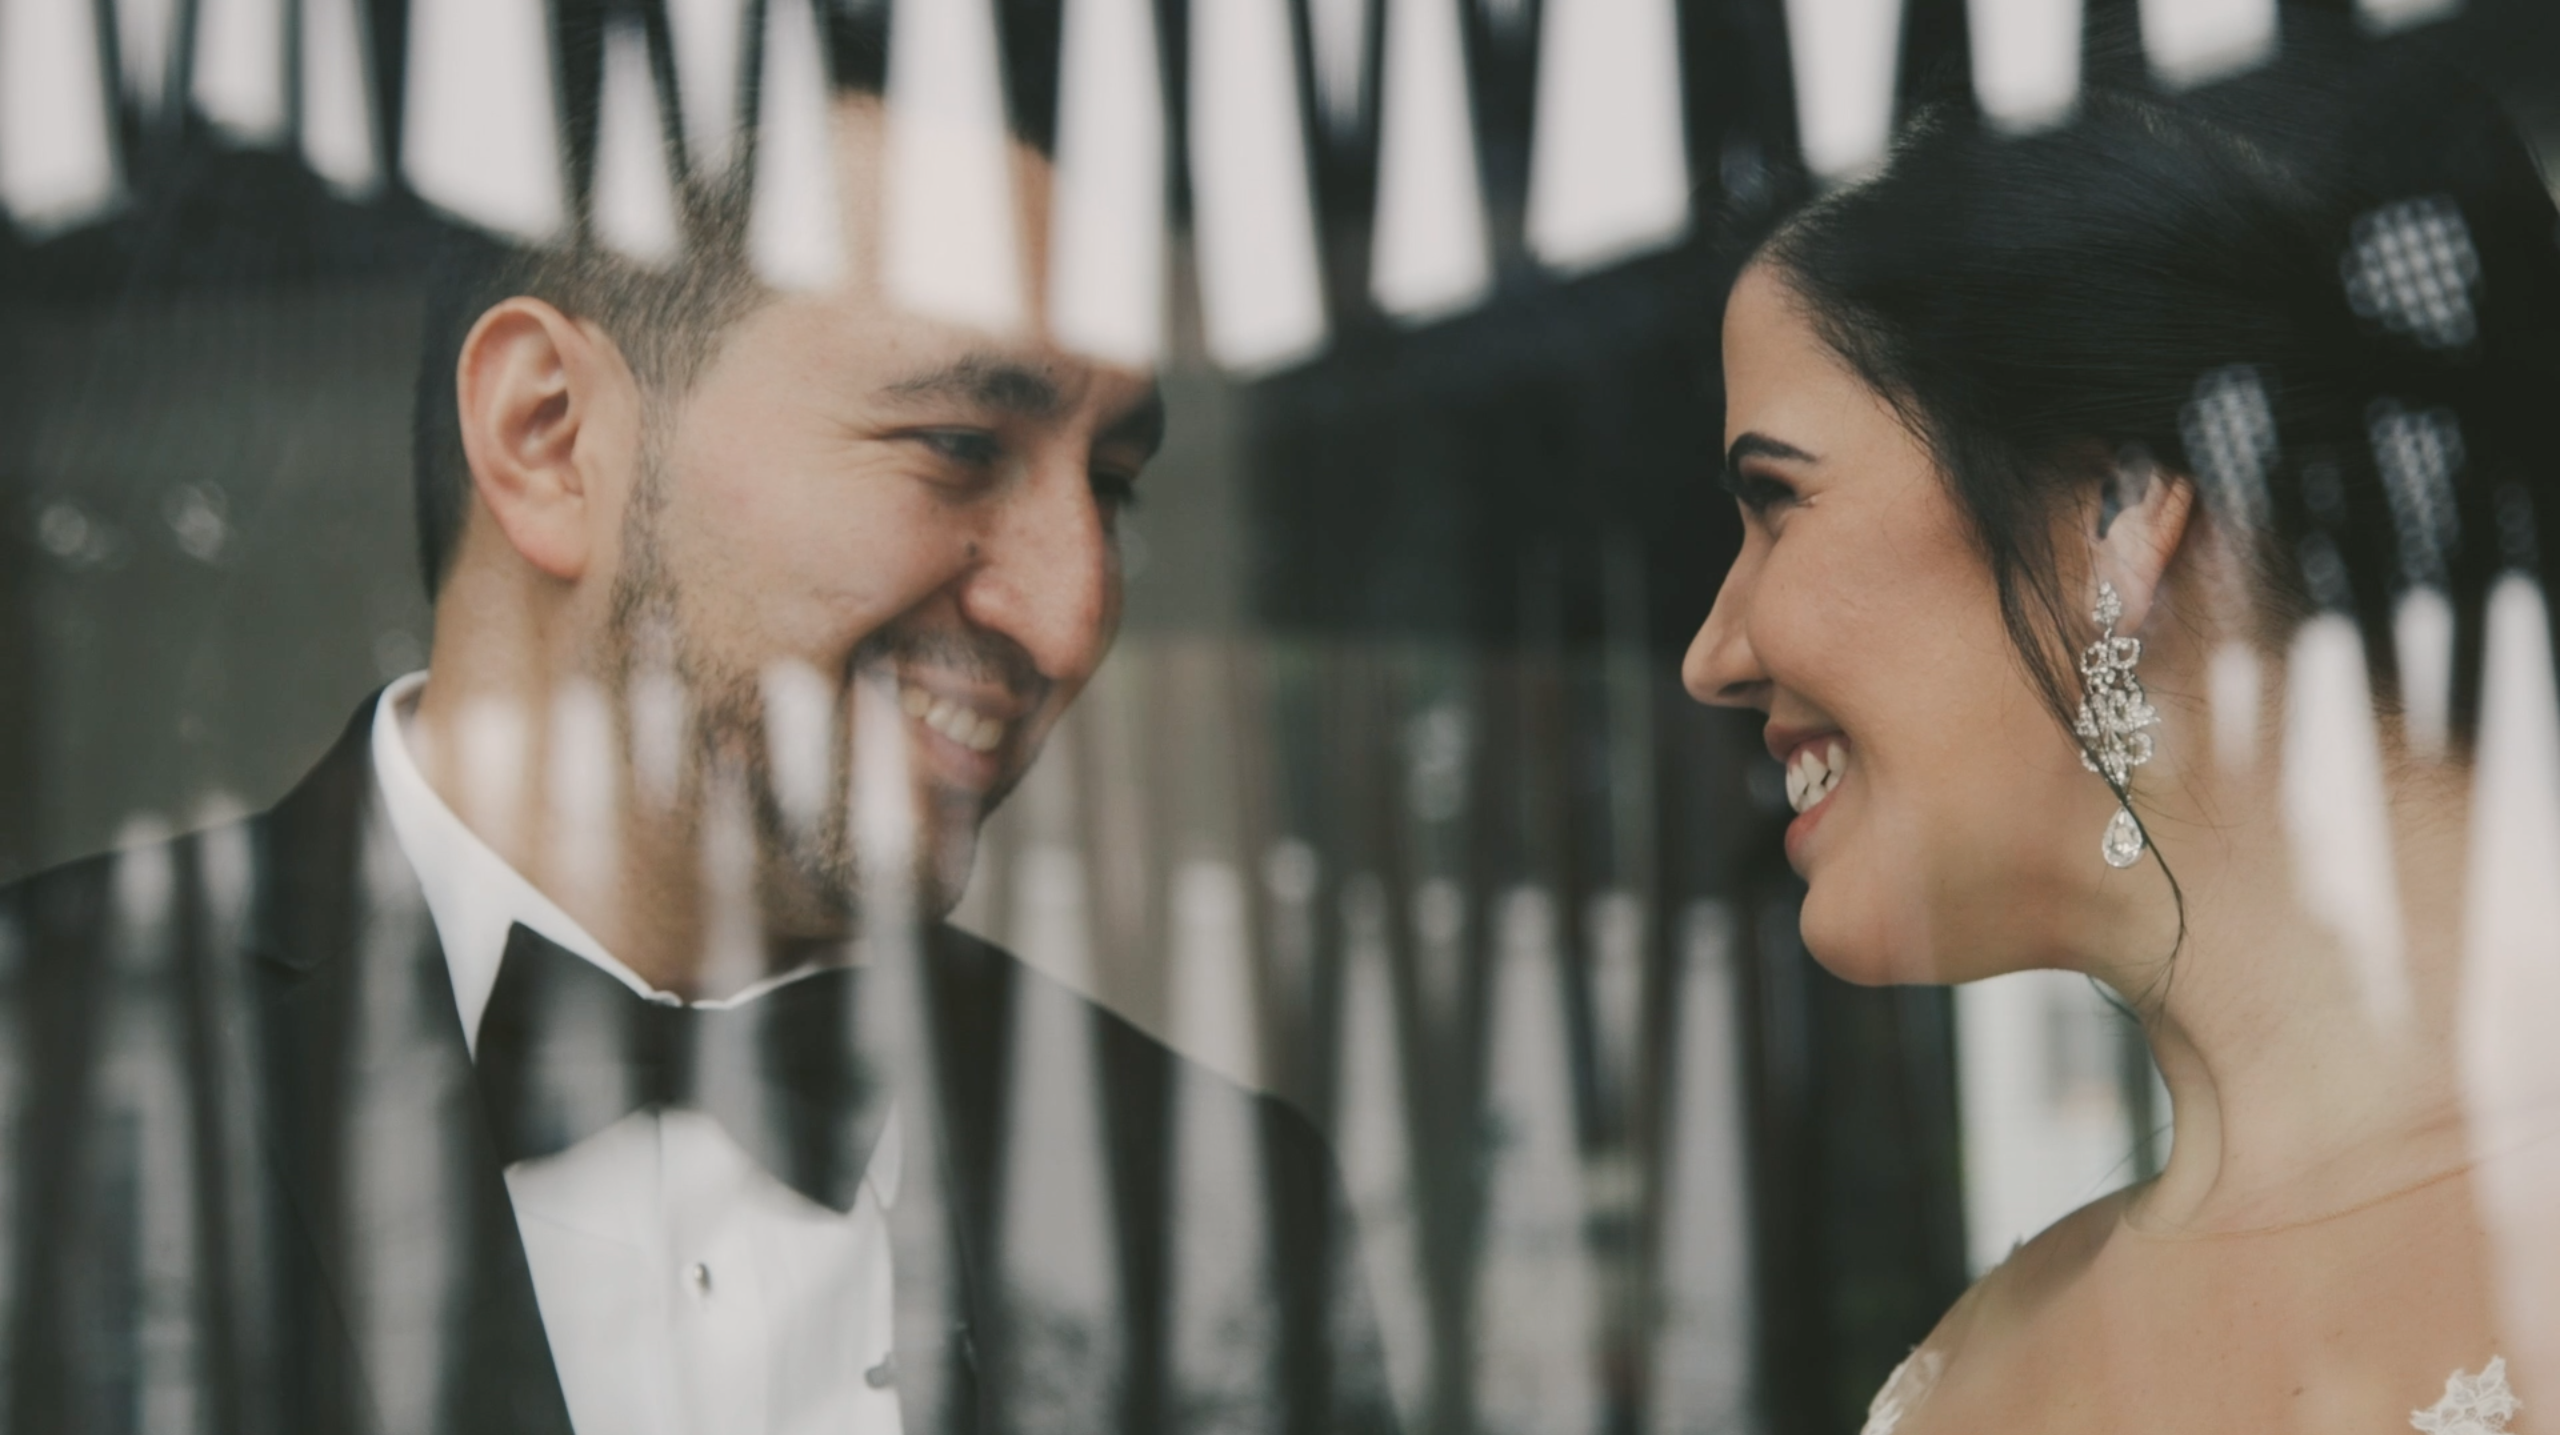 Beatriz + Diego | New York, New York | The Gantry Loft